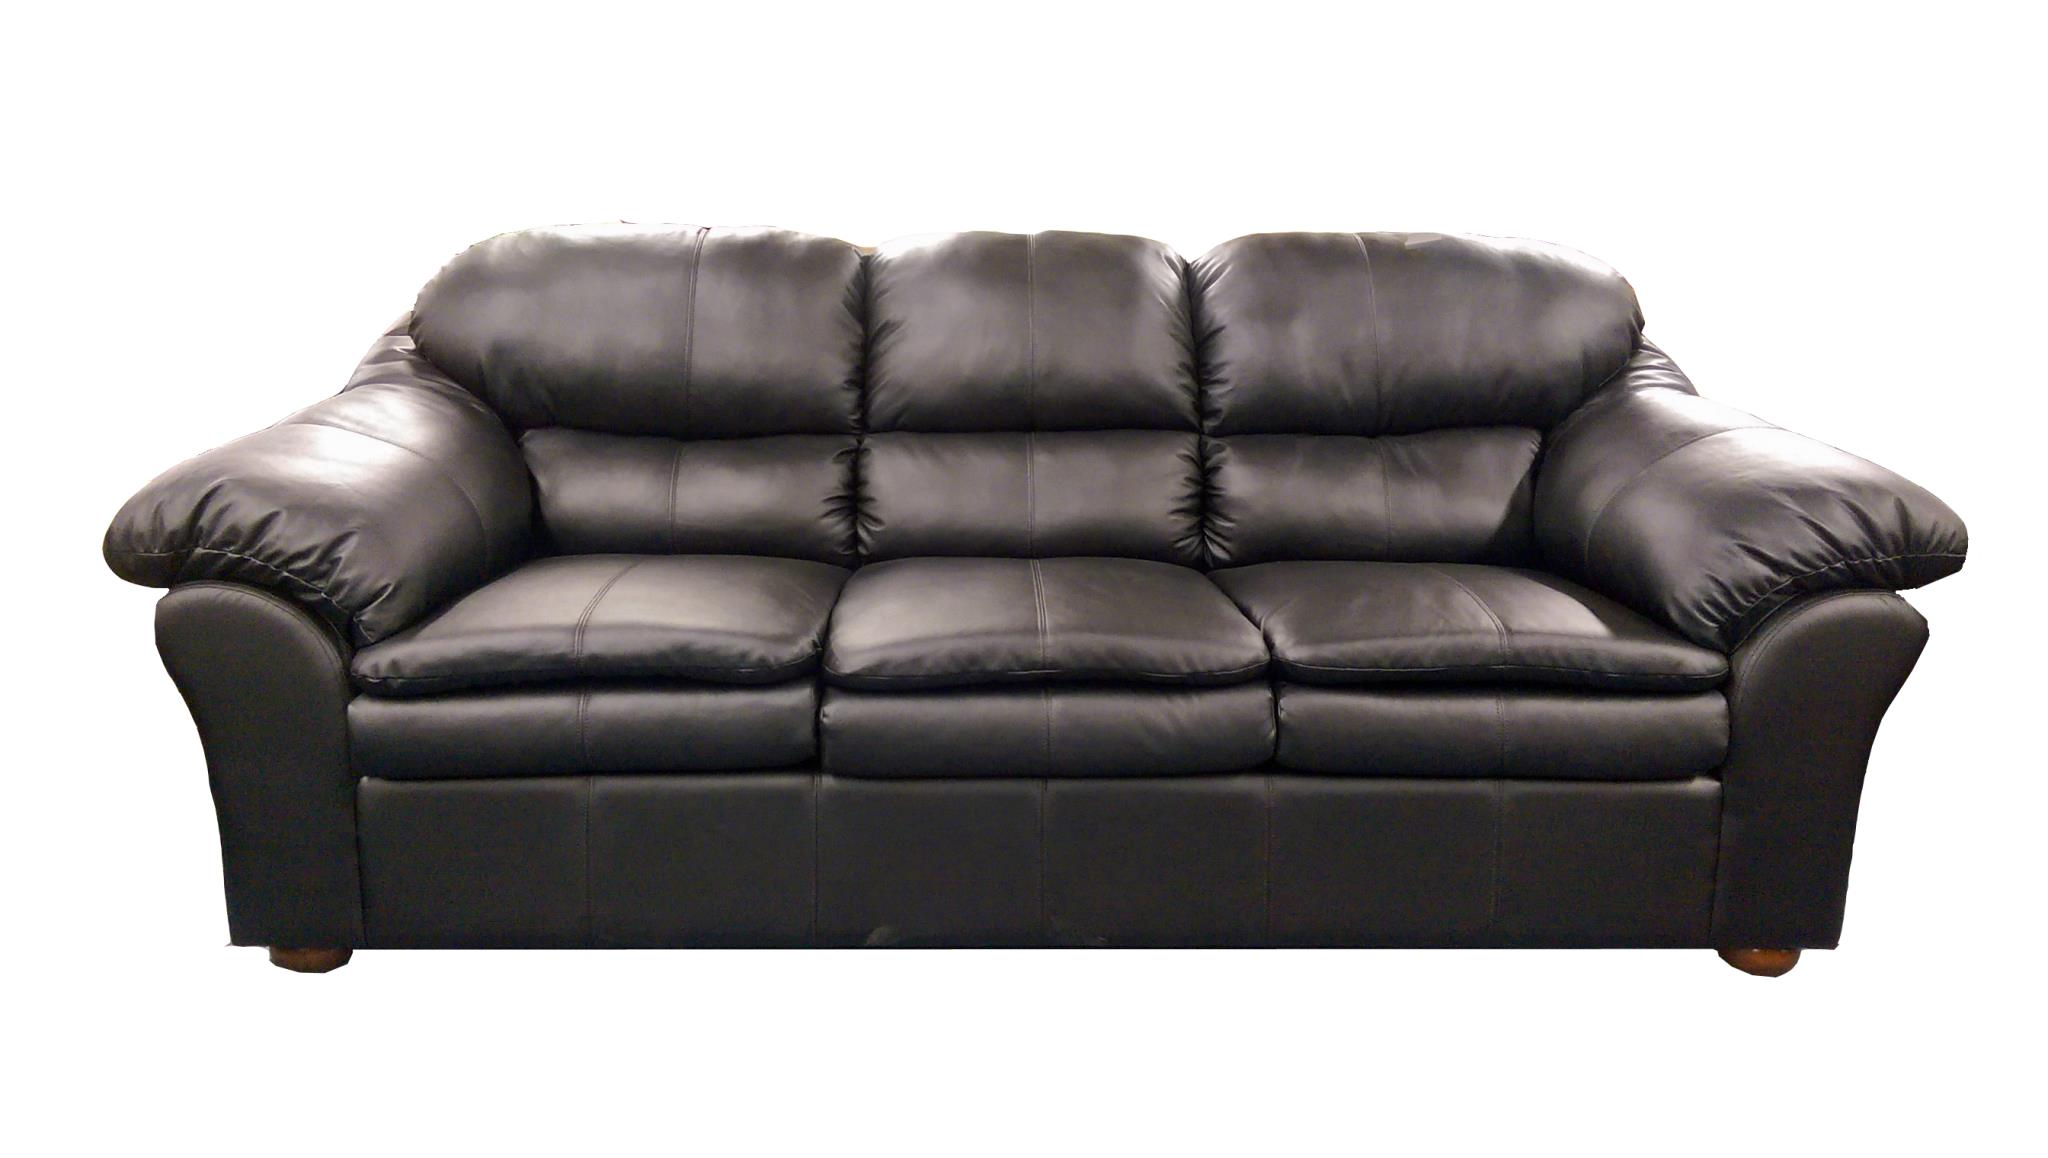 1690 Sofa And Loveseat In Bonded Leather Black